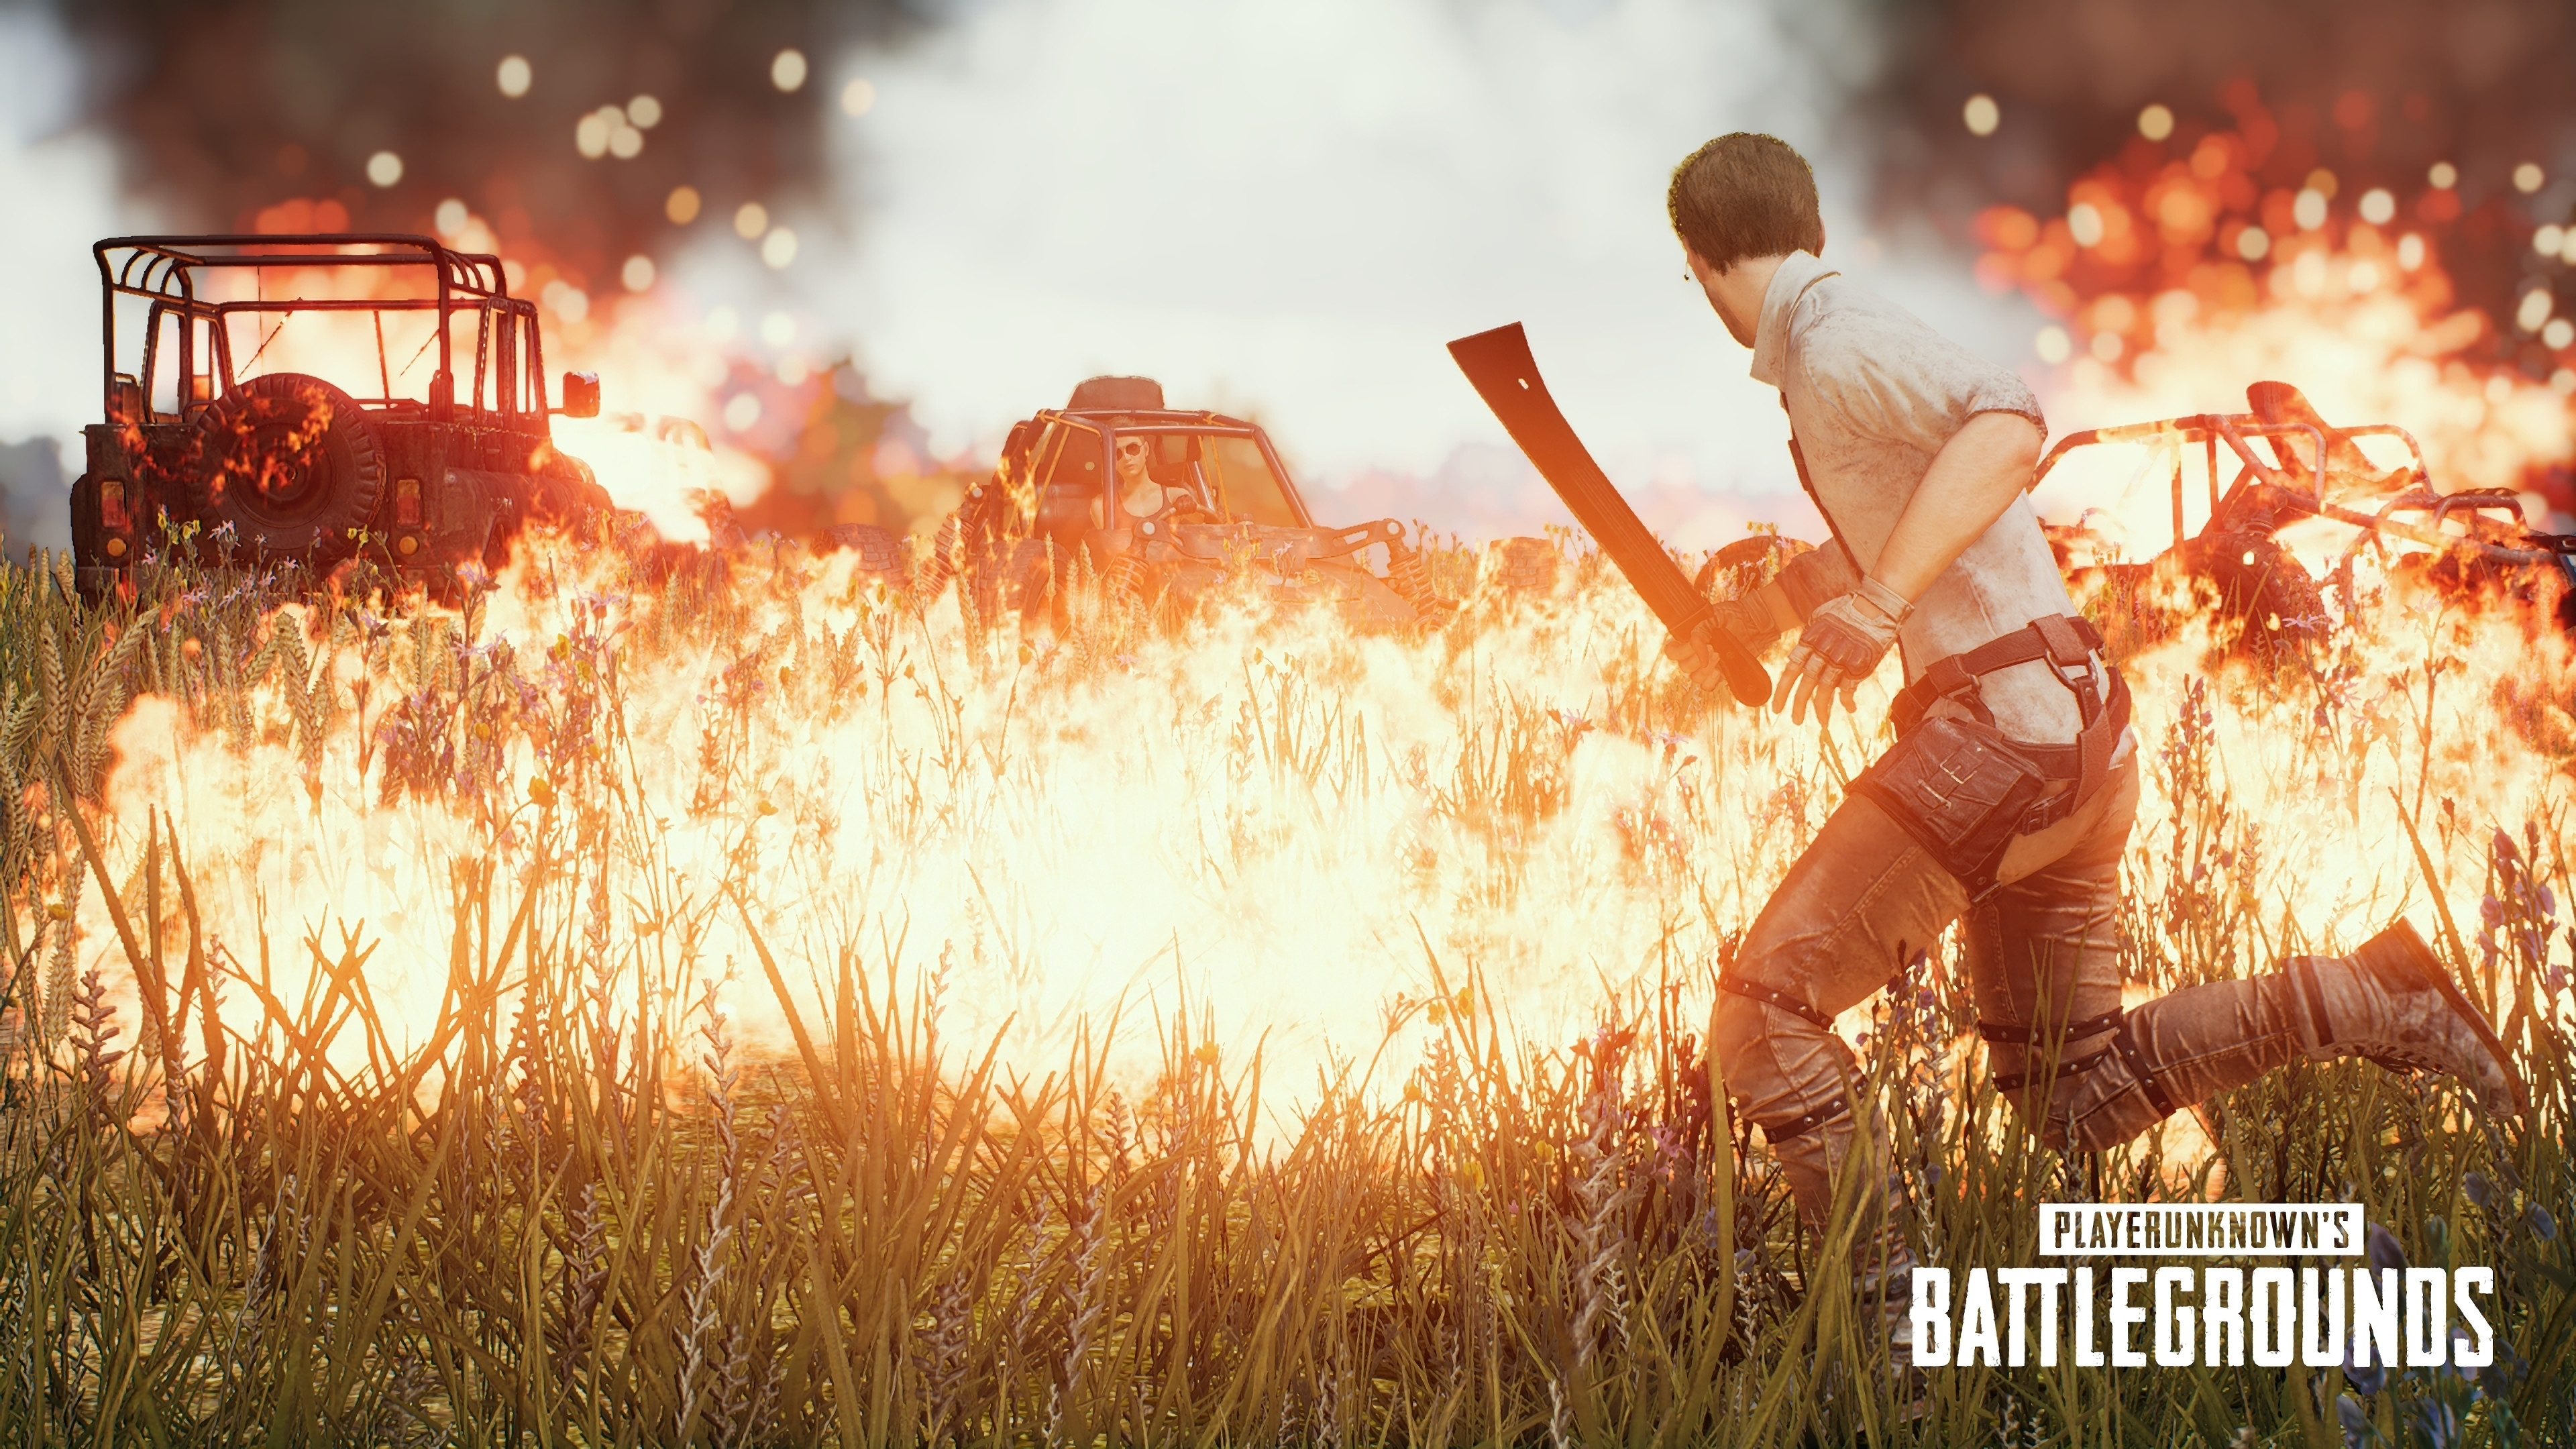 Pubg Christmas Wallpaper: PUBG PlayerUnknown's Battlegrounds 4K Wallpaper